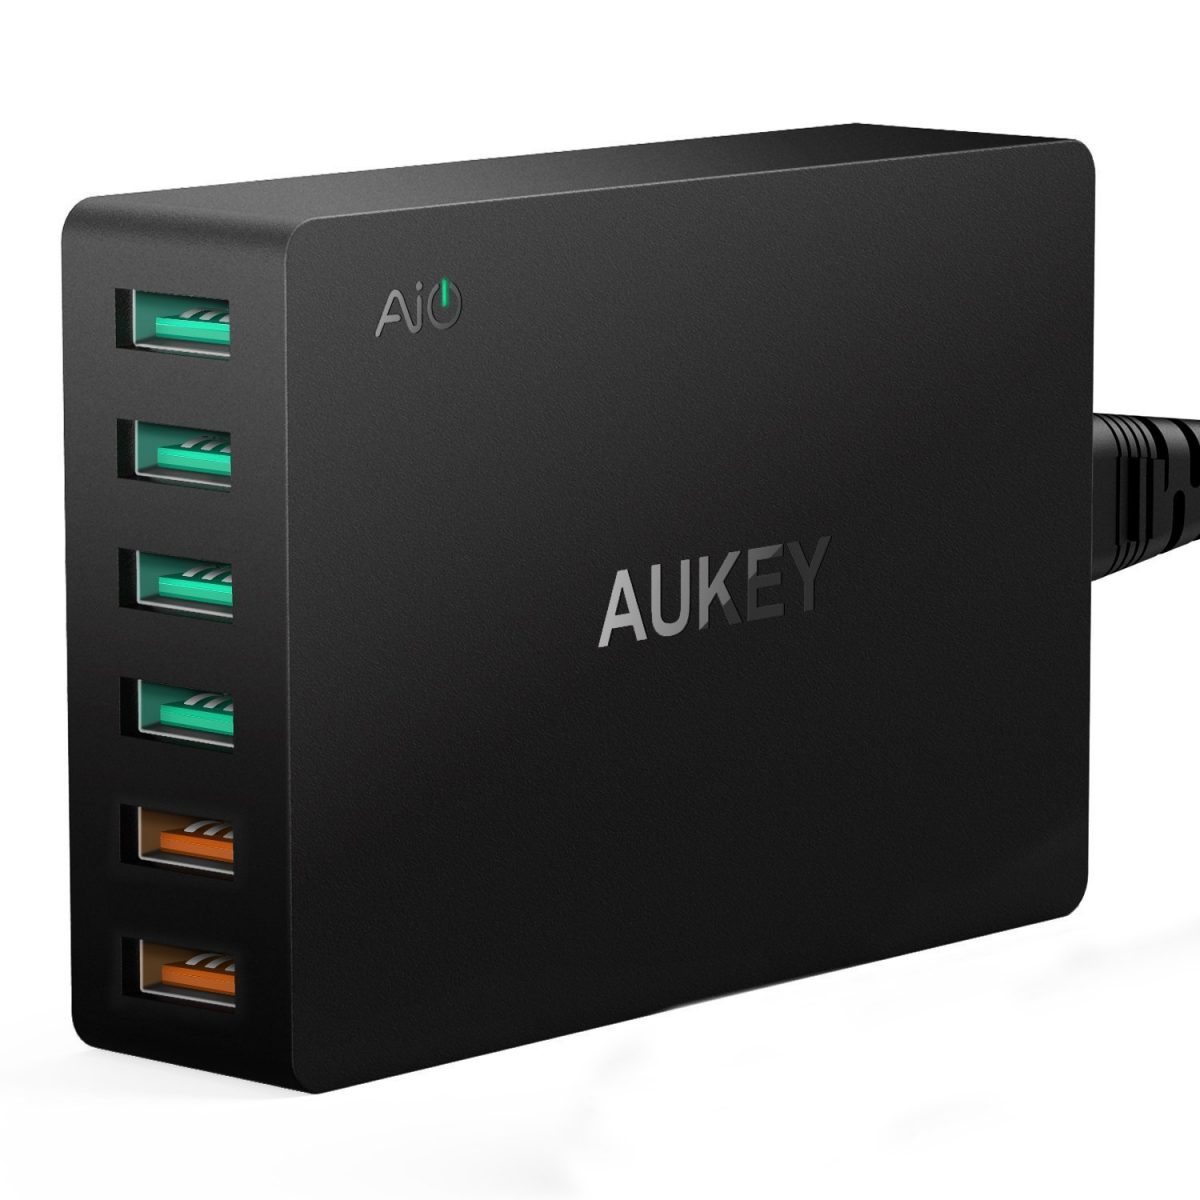 usb charger quick charge 3.0 Alice Bonasio VR Consultancy MR Tom Atkinson Tech Trends Review AR Mixed Virtual honor 7x Wileyfox Swift 2+ Add-x Aukey 1080